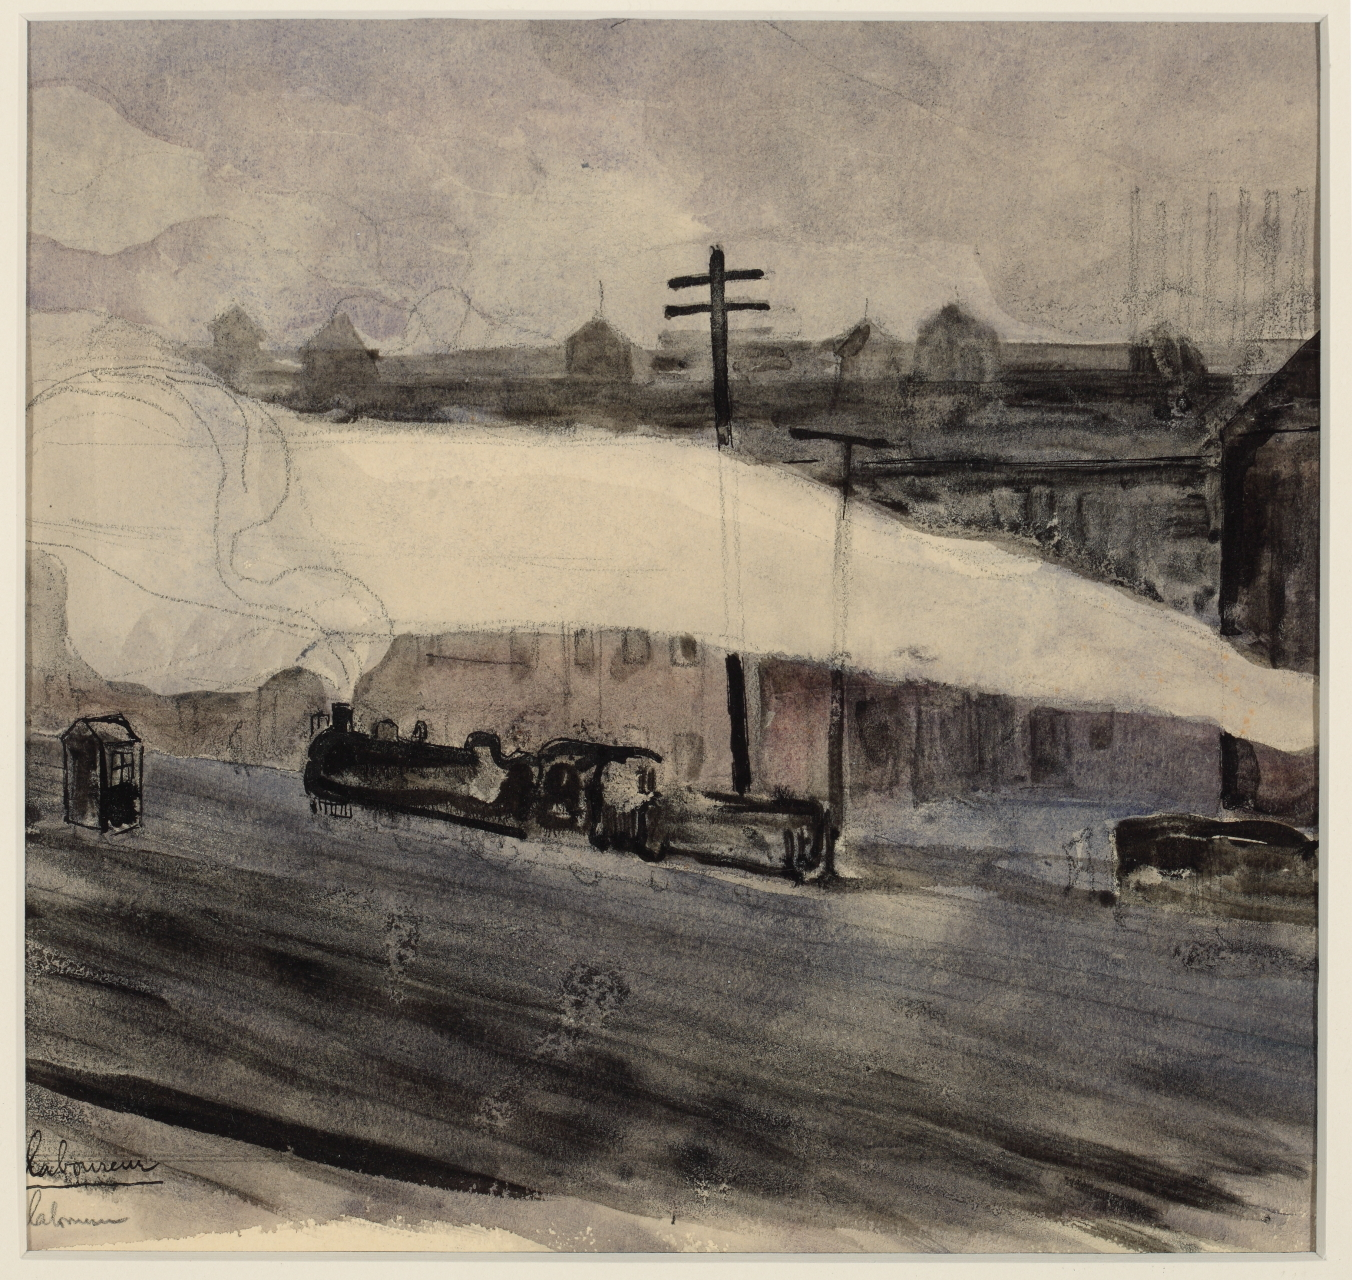 """Jean-Emile Laboureur (French, 1877–1943), """"The Locomotive Depot"""" 1905. Watercolor, 8 1/2 x 8 3/4 in. Collection of Sheryl and Bruce Wolf."""